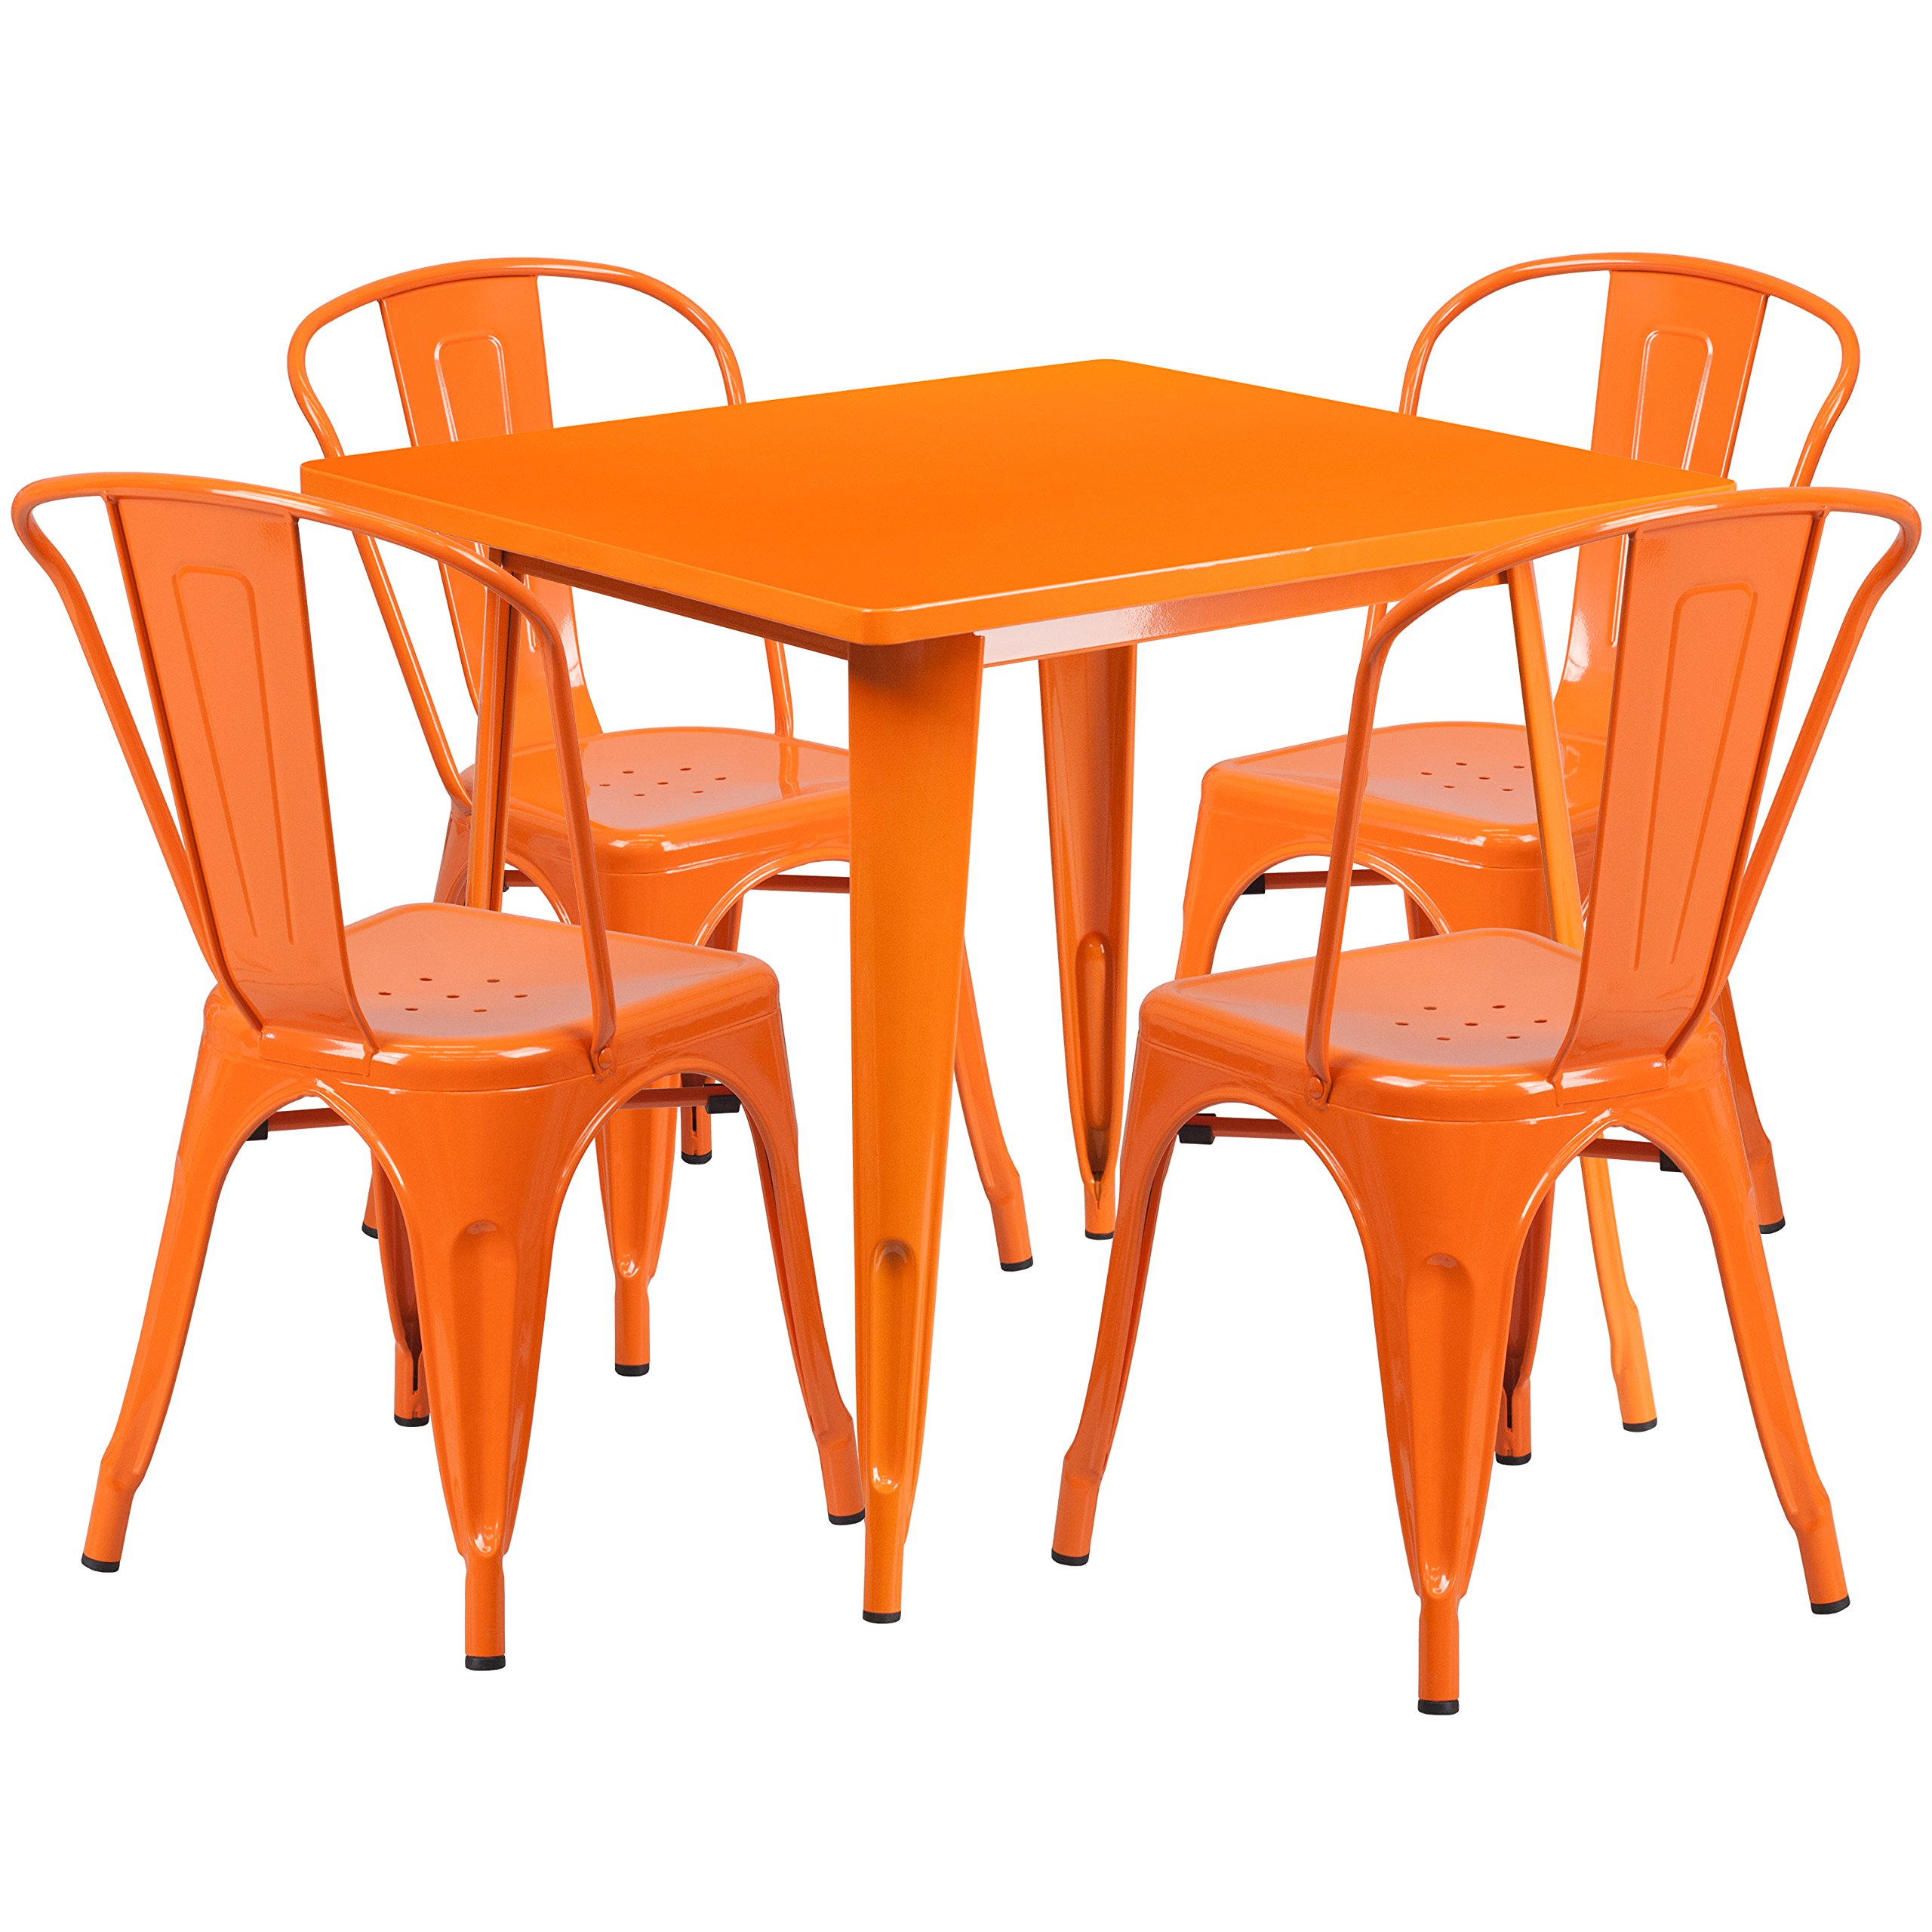 Flash Furniture 31.5'' Square Orange Metal Indoor-Outdoor Table Set with 4 Stack Chairs by Flash Furniture